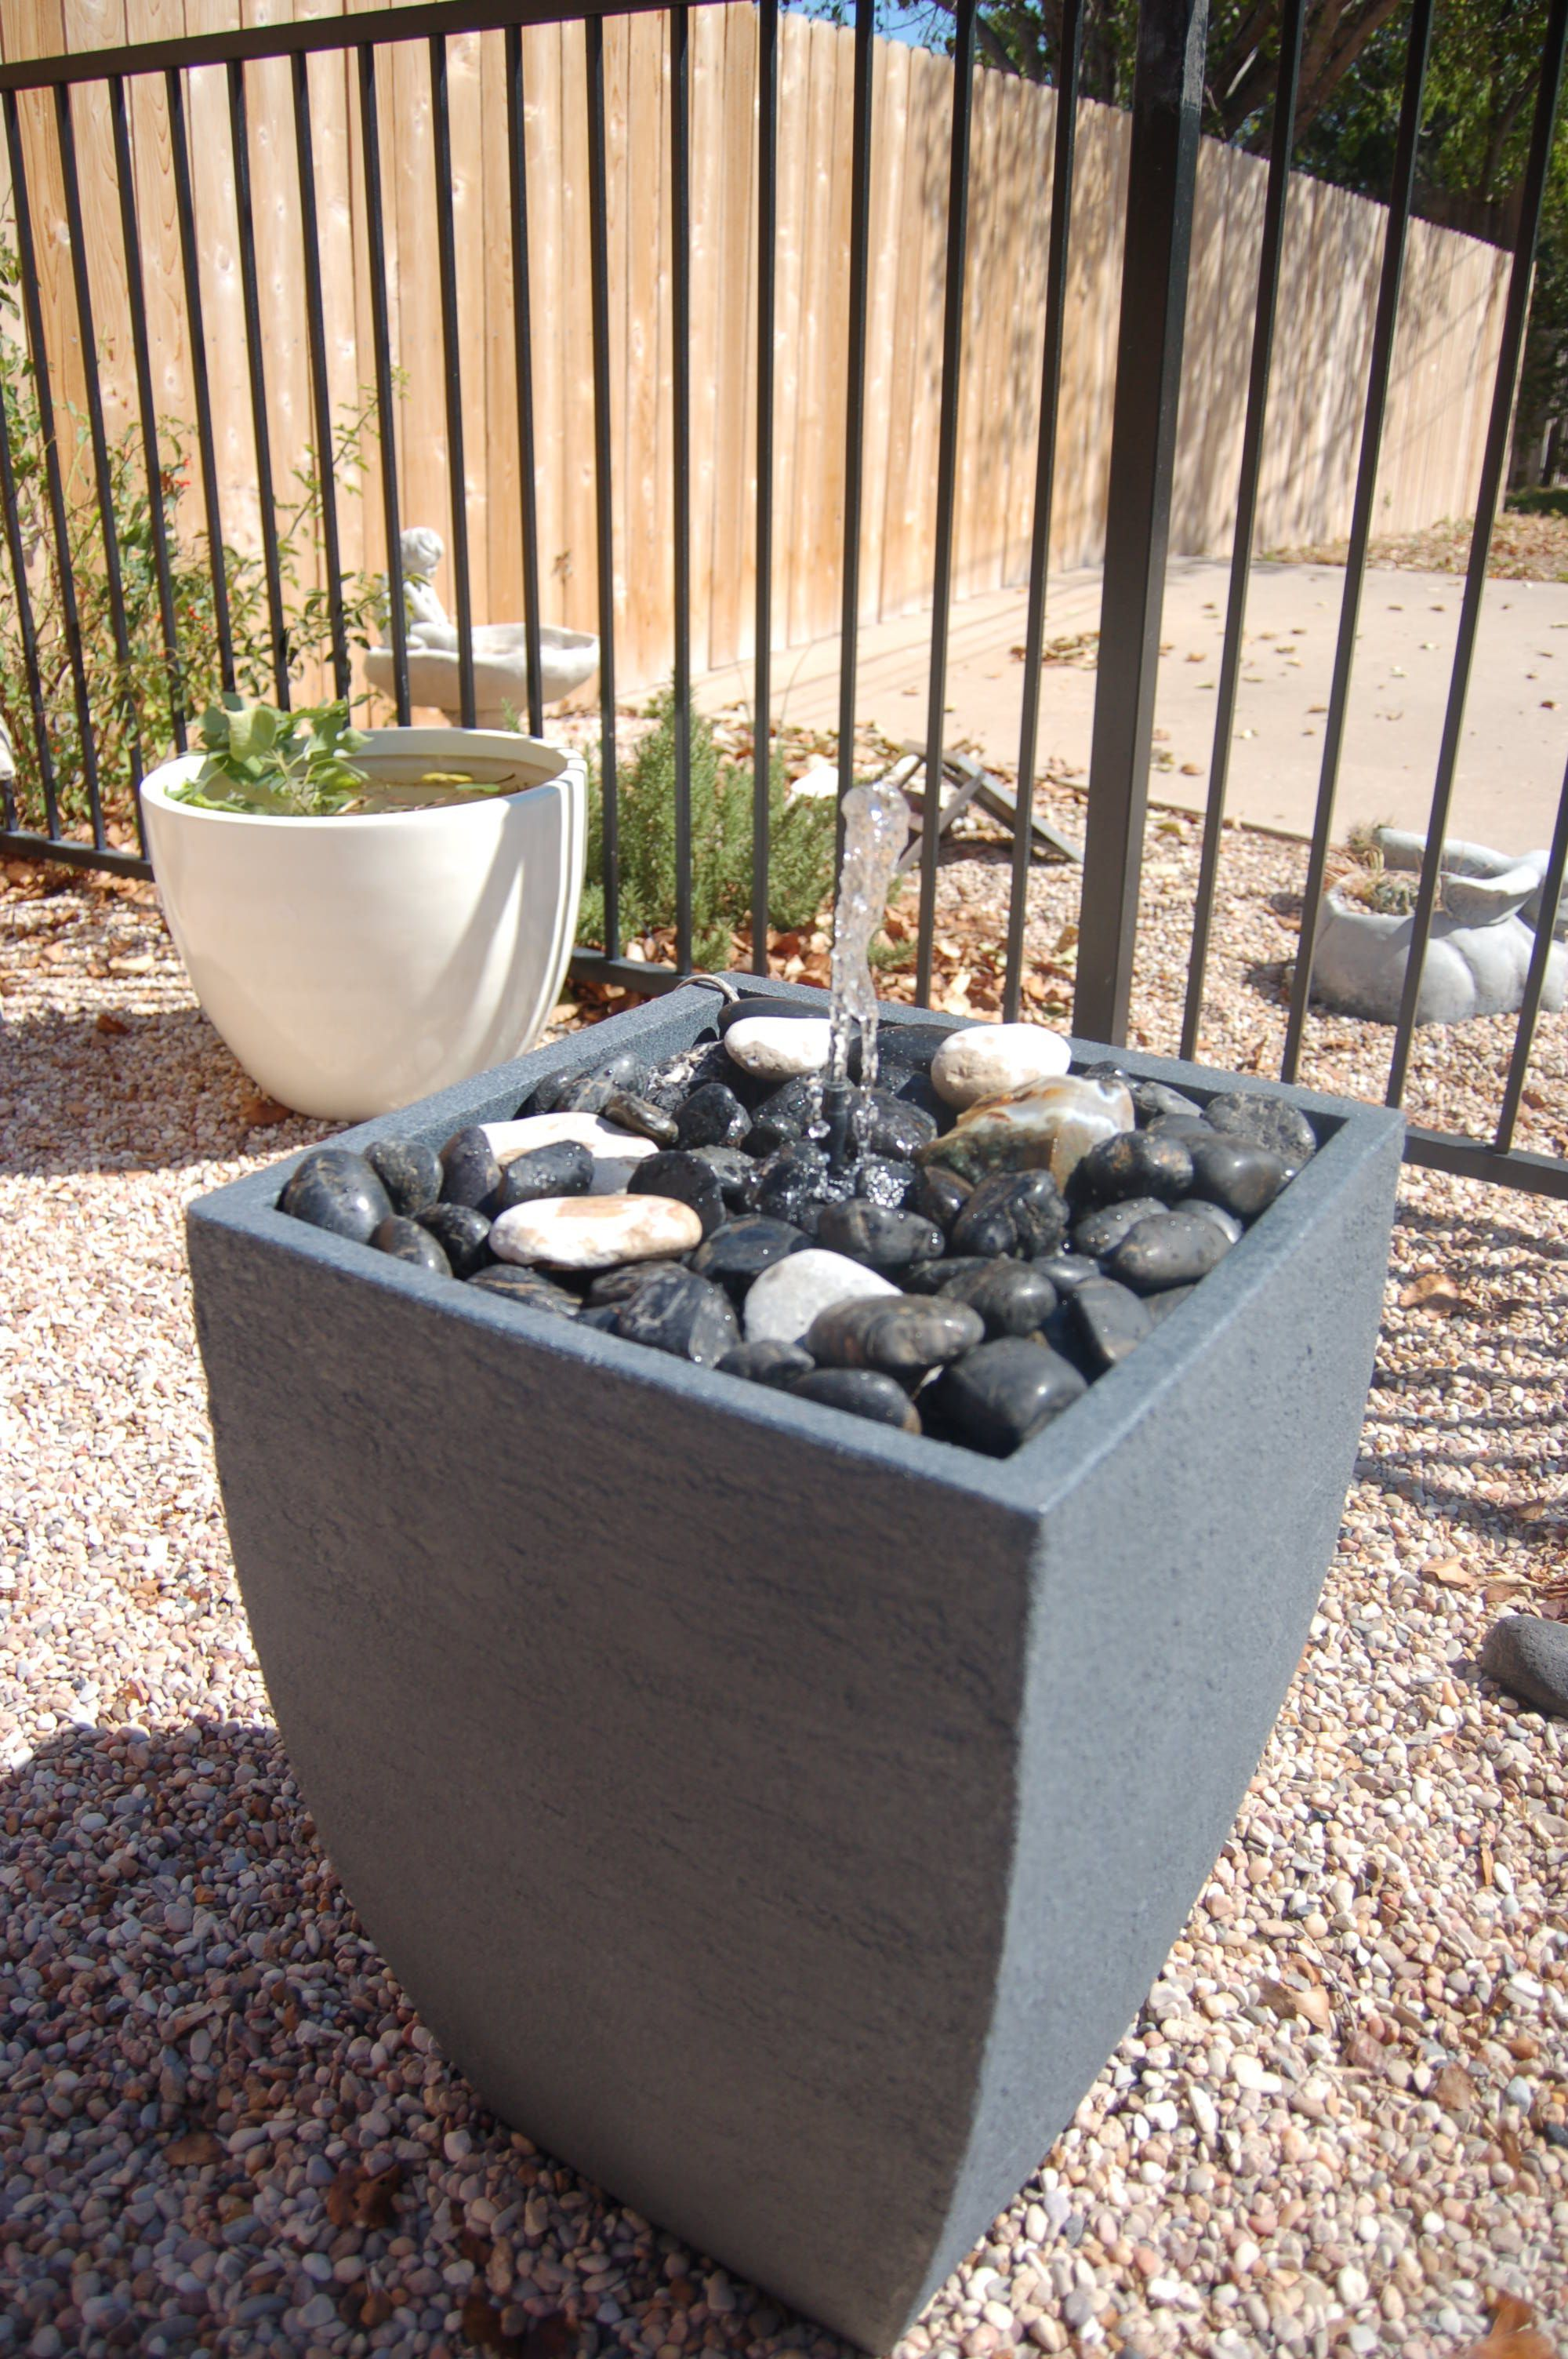 Diy Water Feature Convert Planter To A Bubbling Pea Gravel And Iron Fence Love